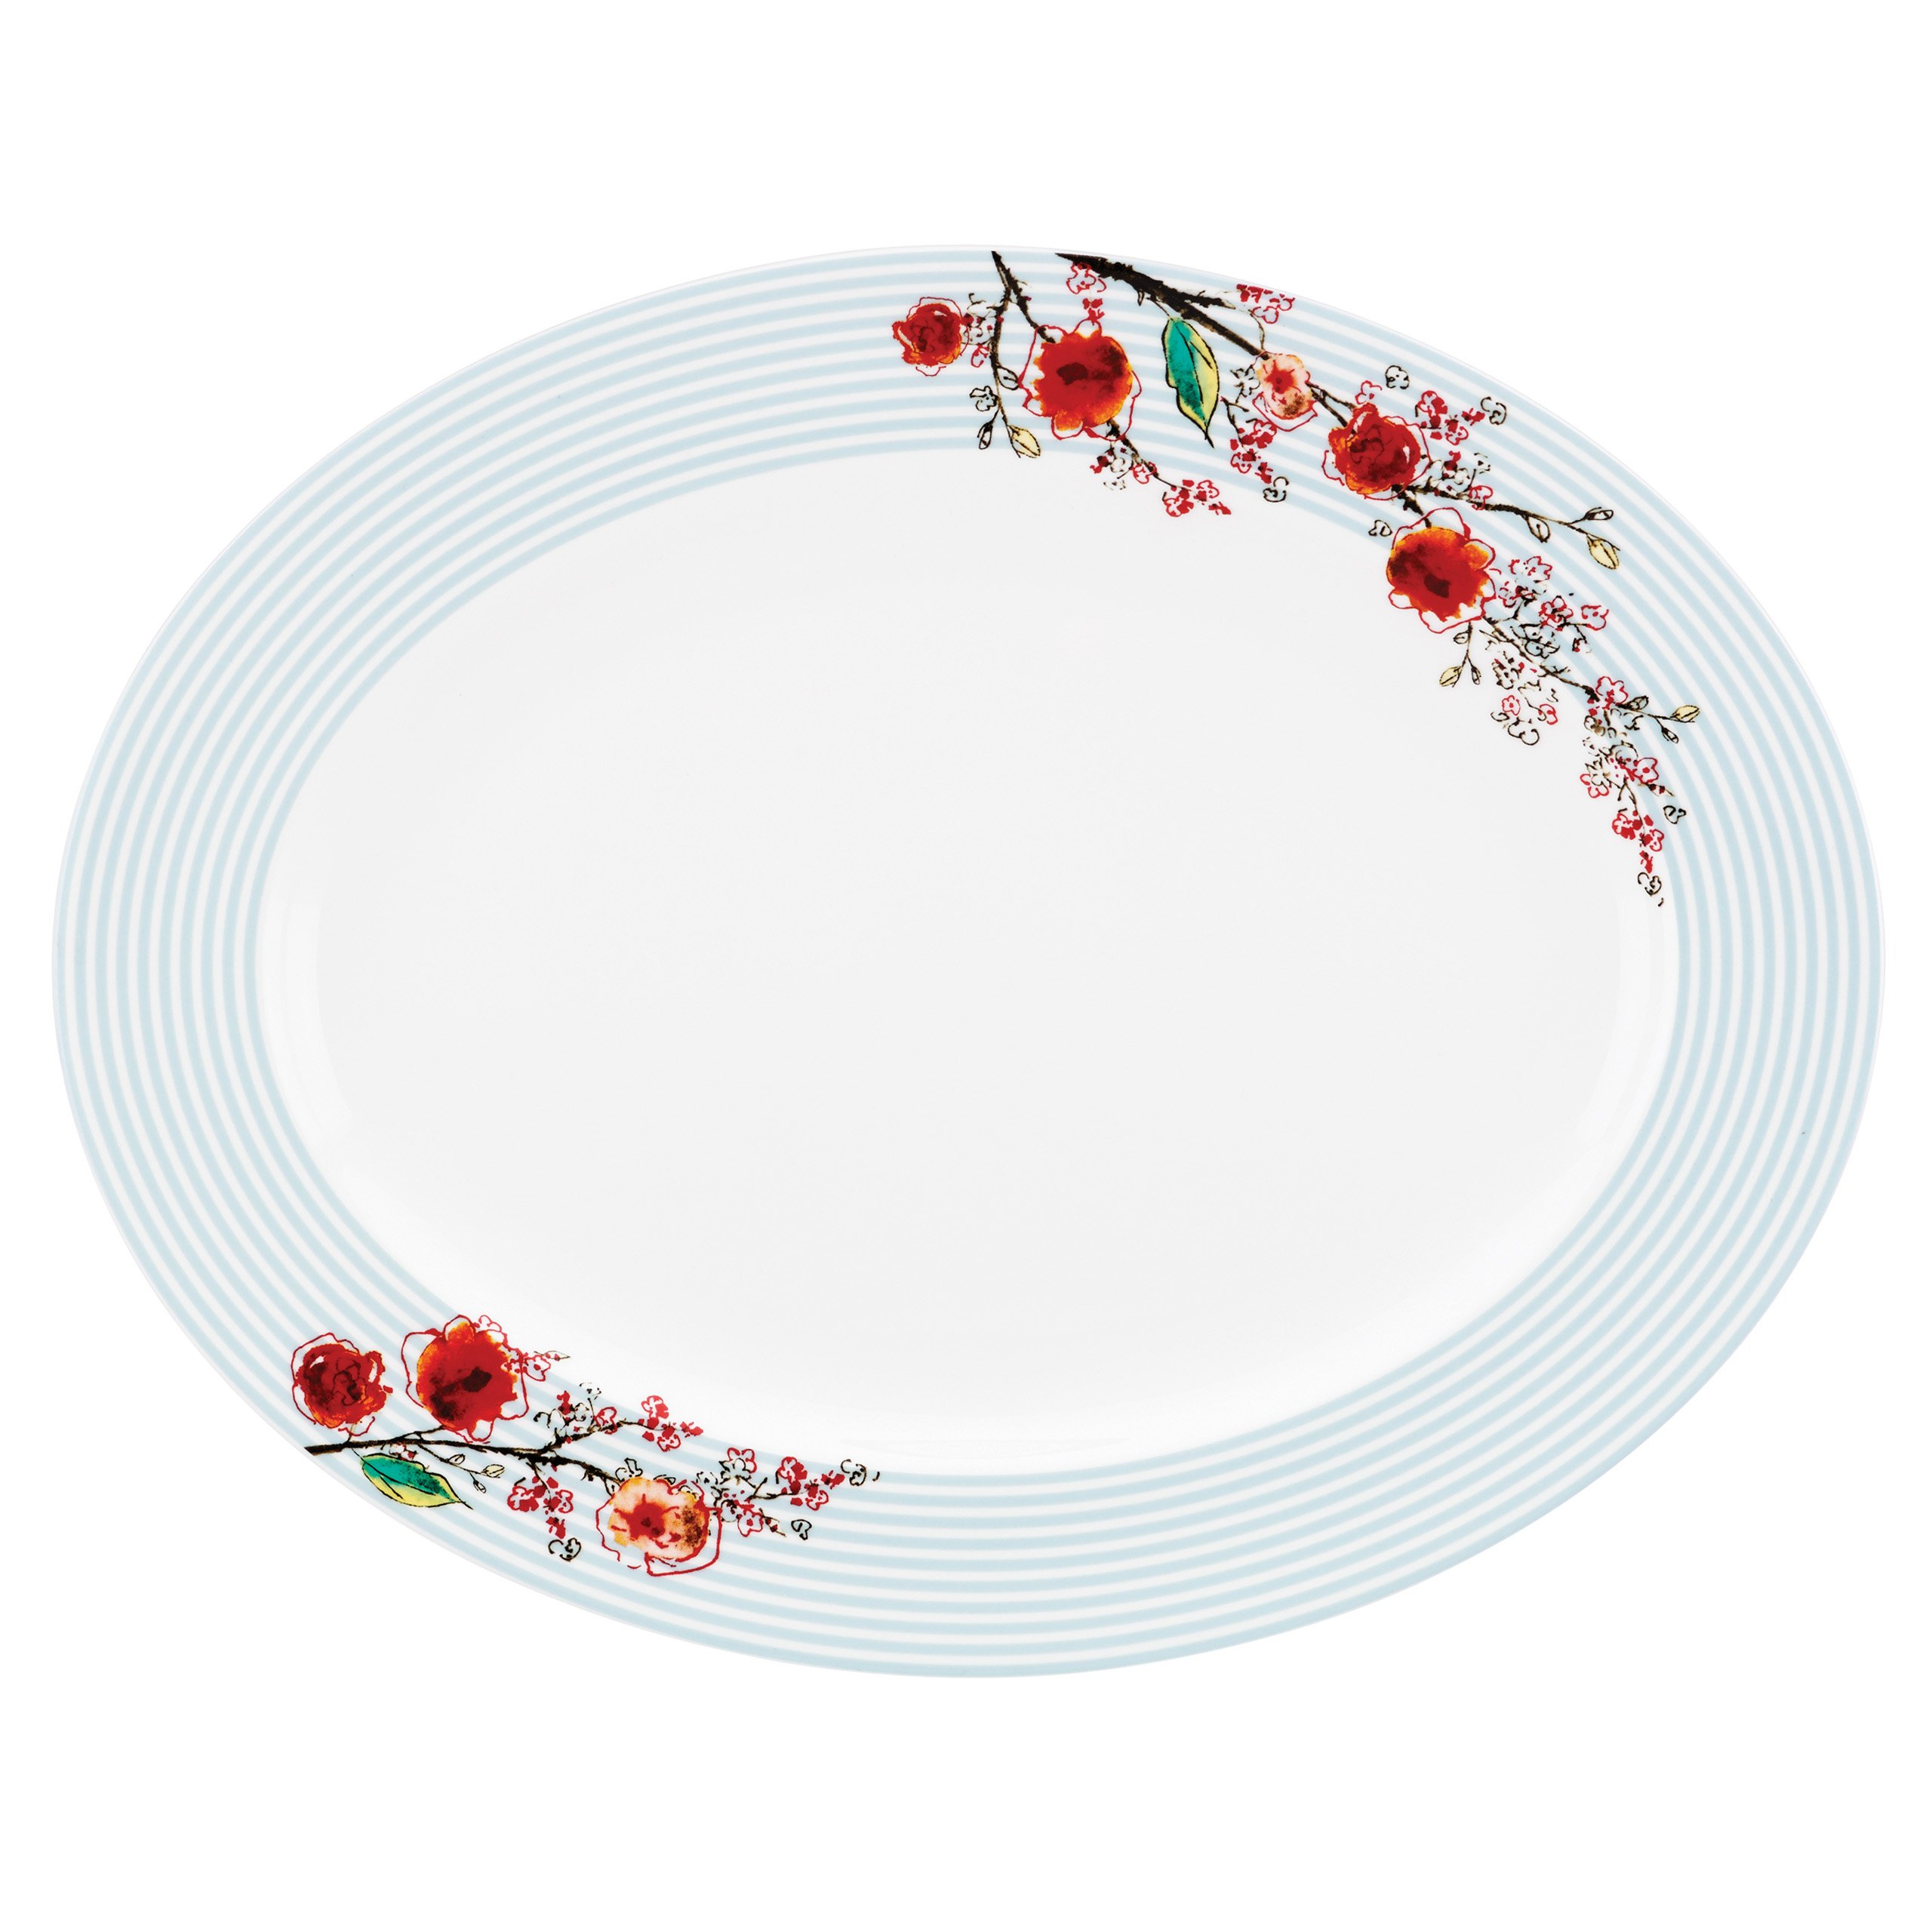 Lenox Chirp Stripe Oval Platter, White